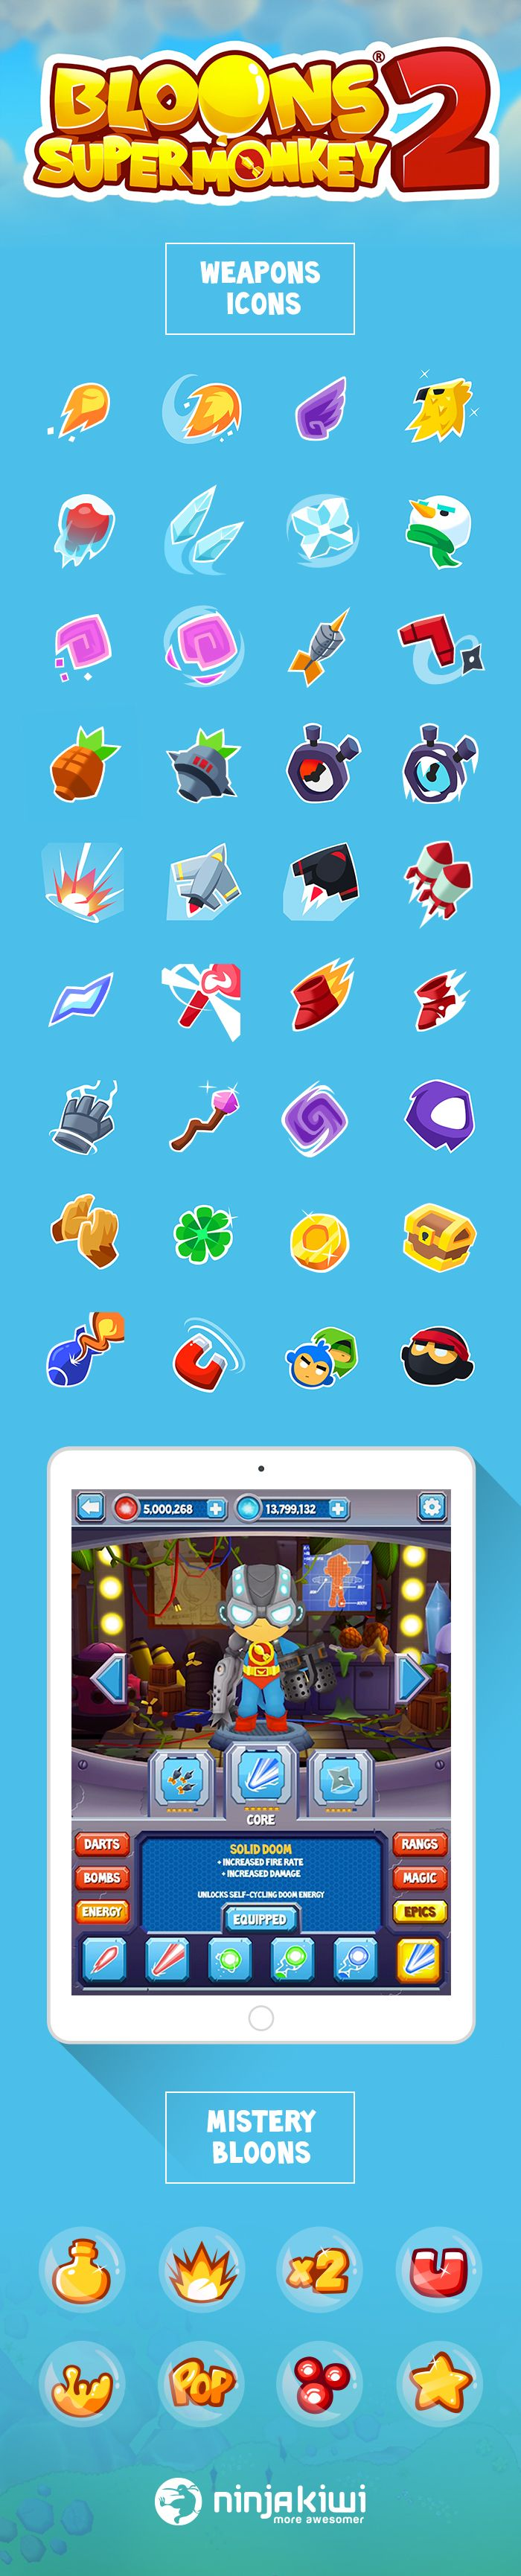 icons design bloons super monkey 2 - Game Design Ideas